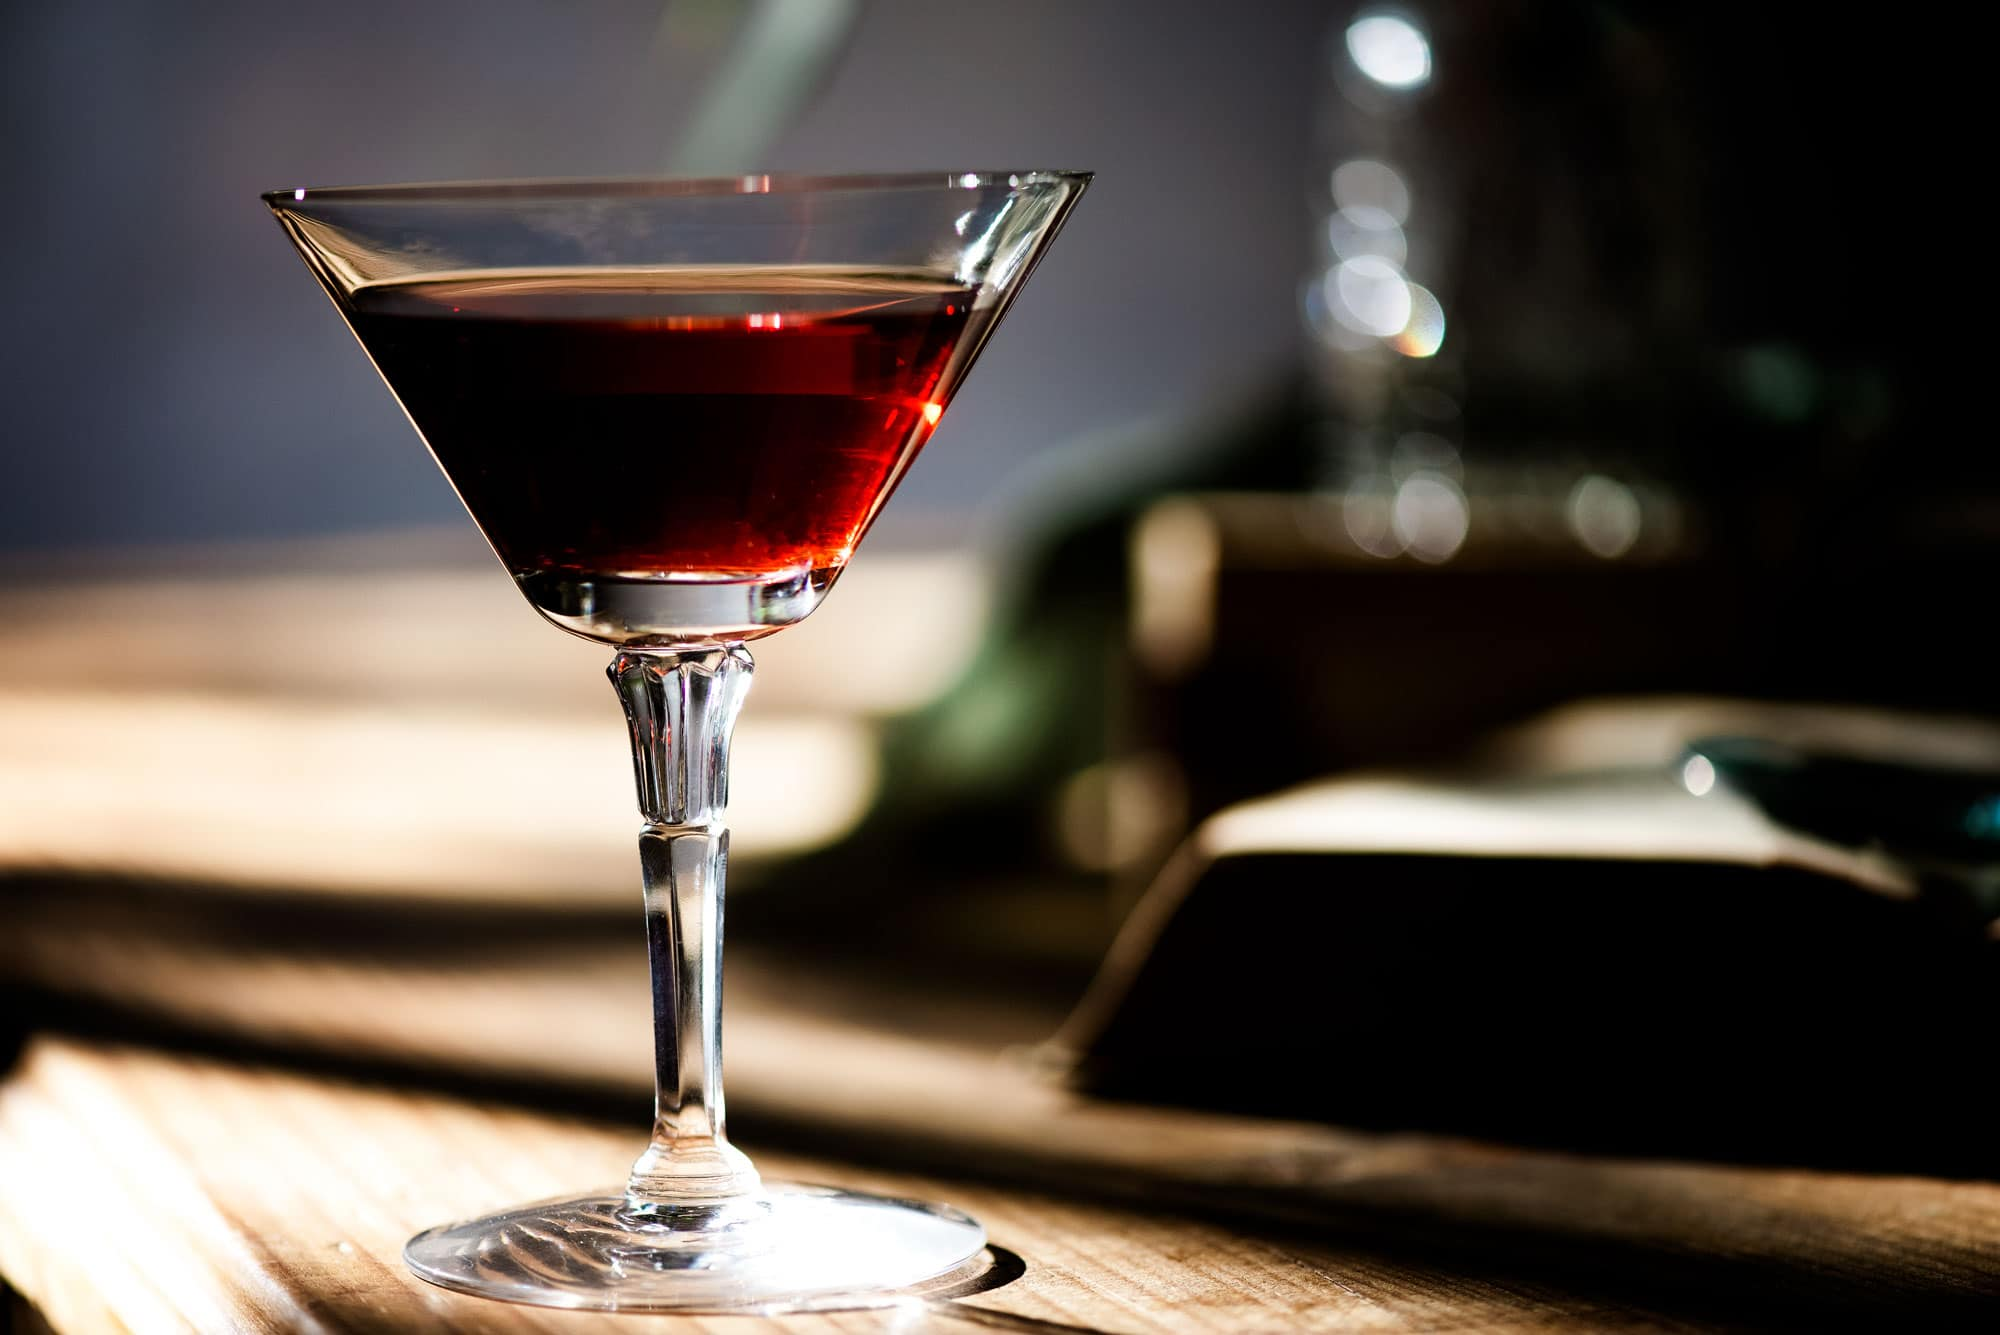 Martini glass with red drink sitting on a wood counter